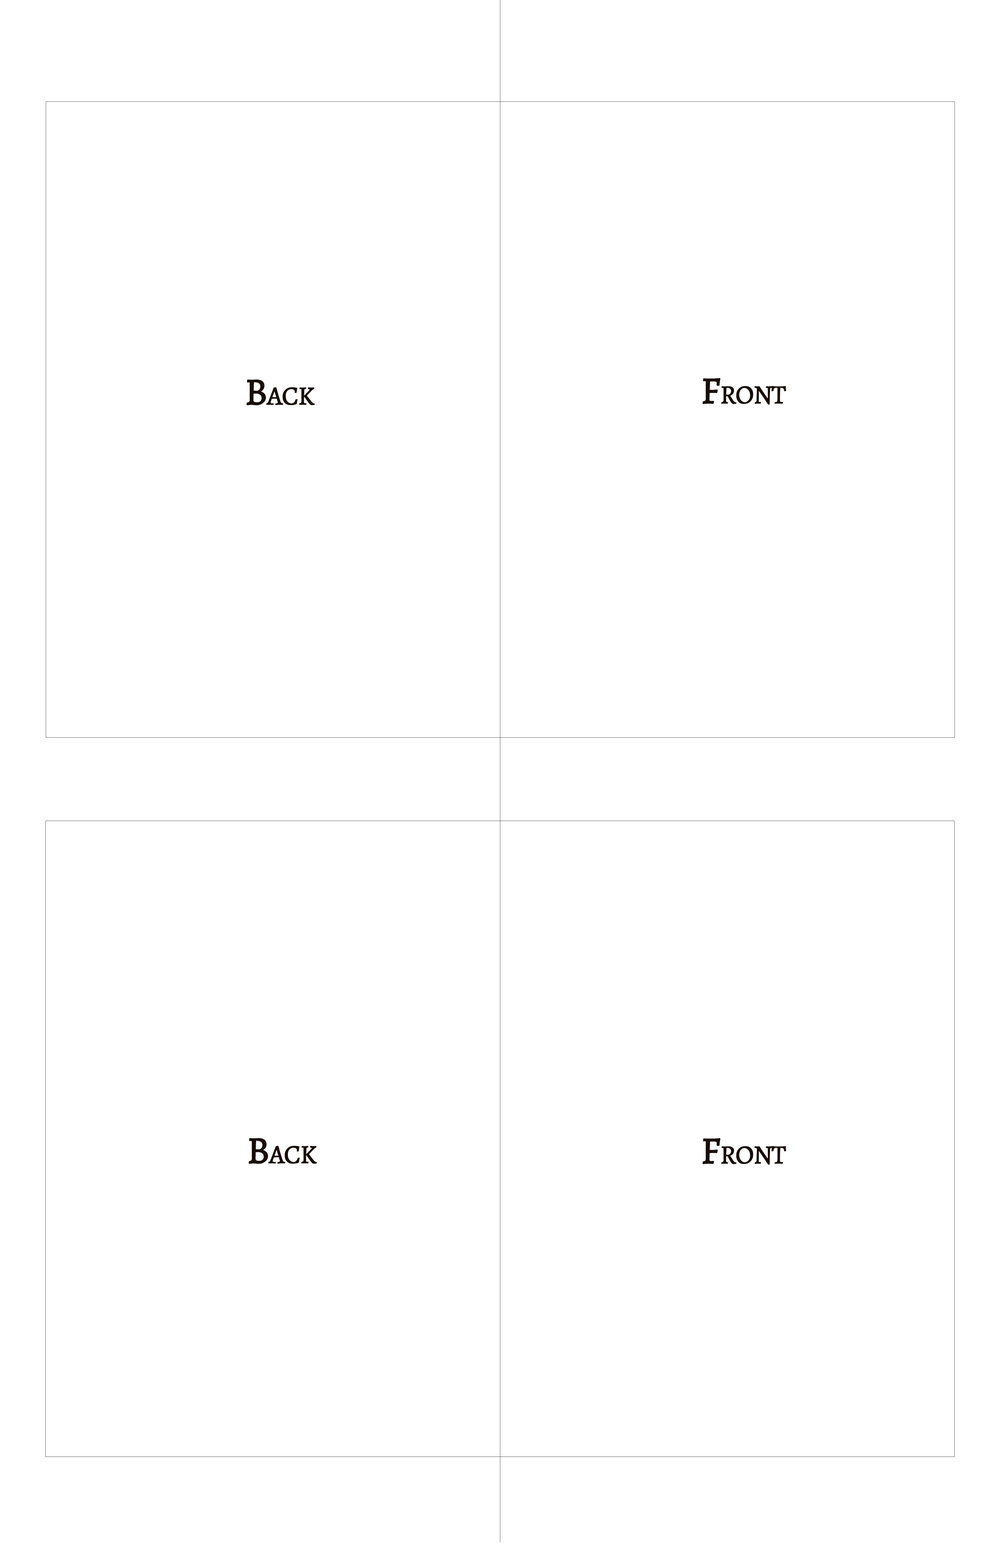 A7 greeting card layout